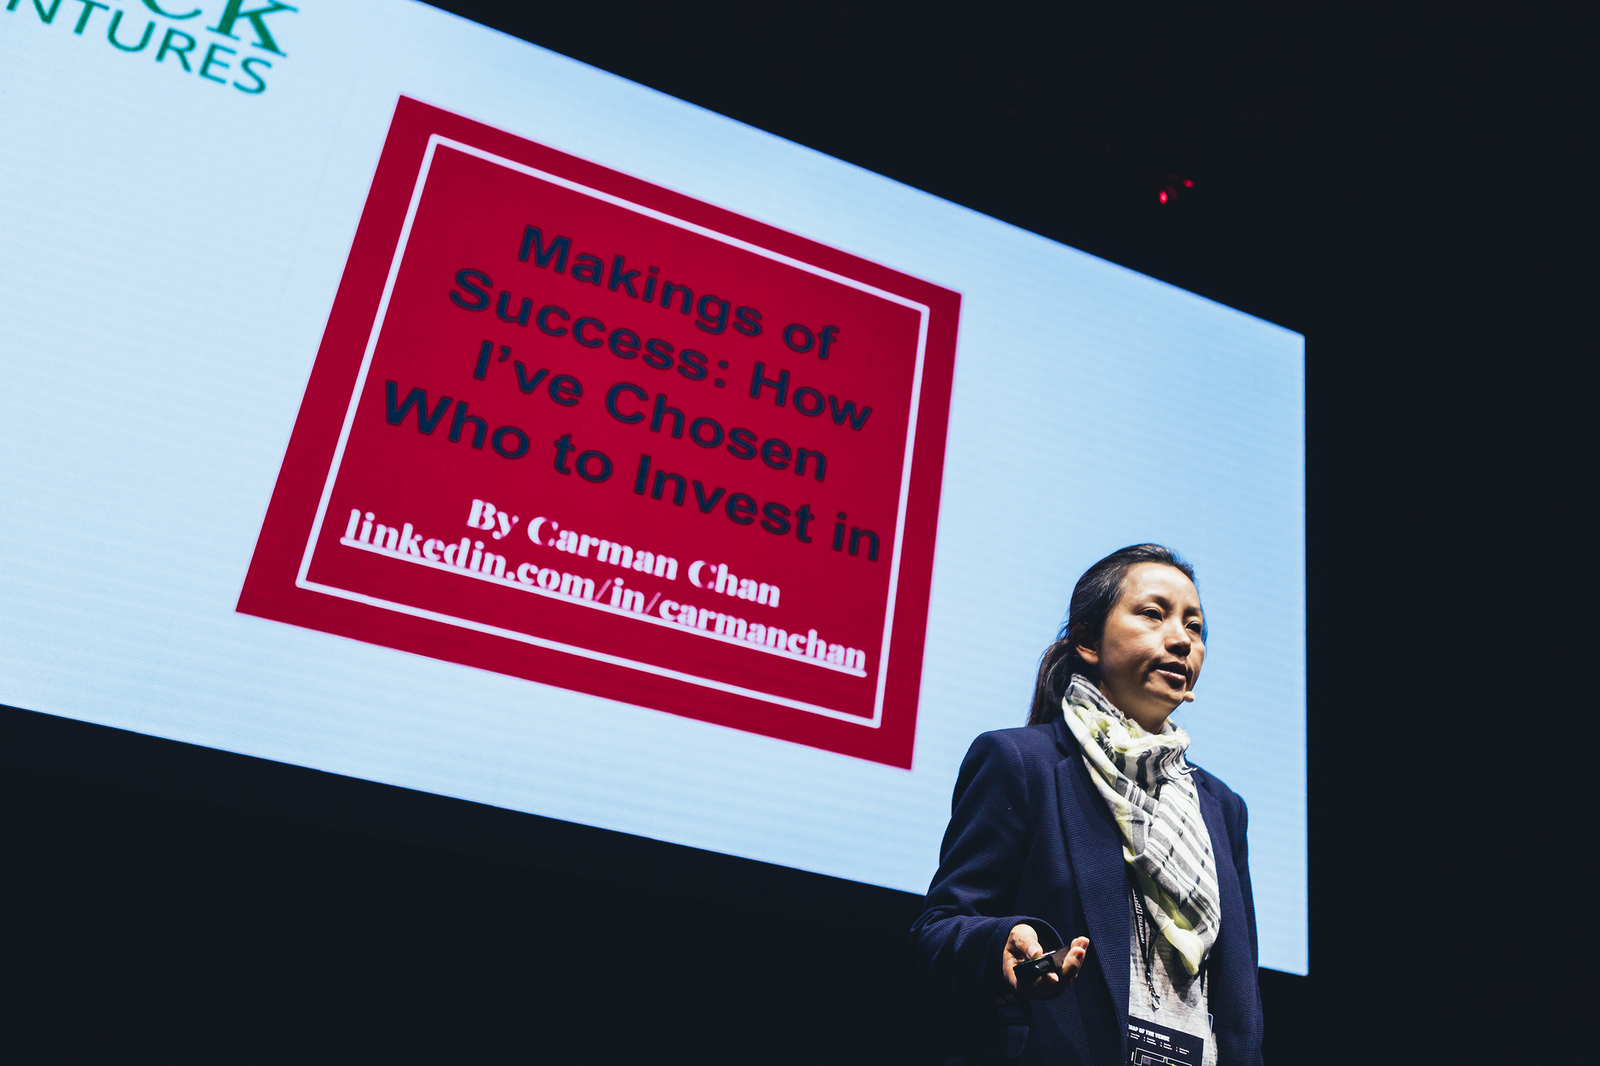 Carman Chan speaks at Slush Shanghai about how she chooses startups to invest in.